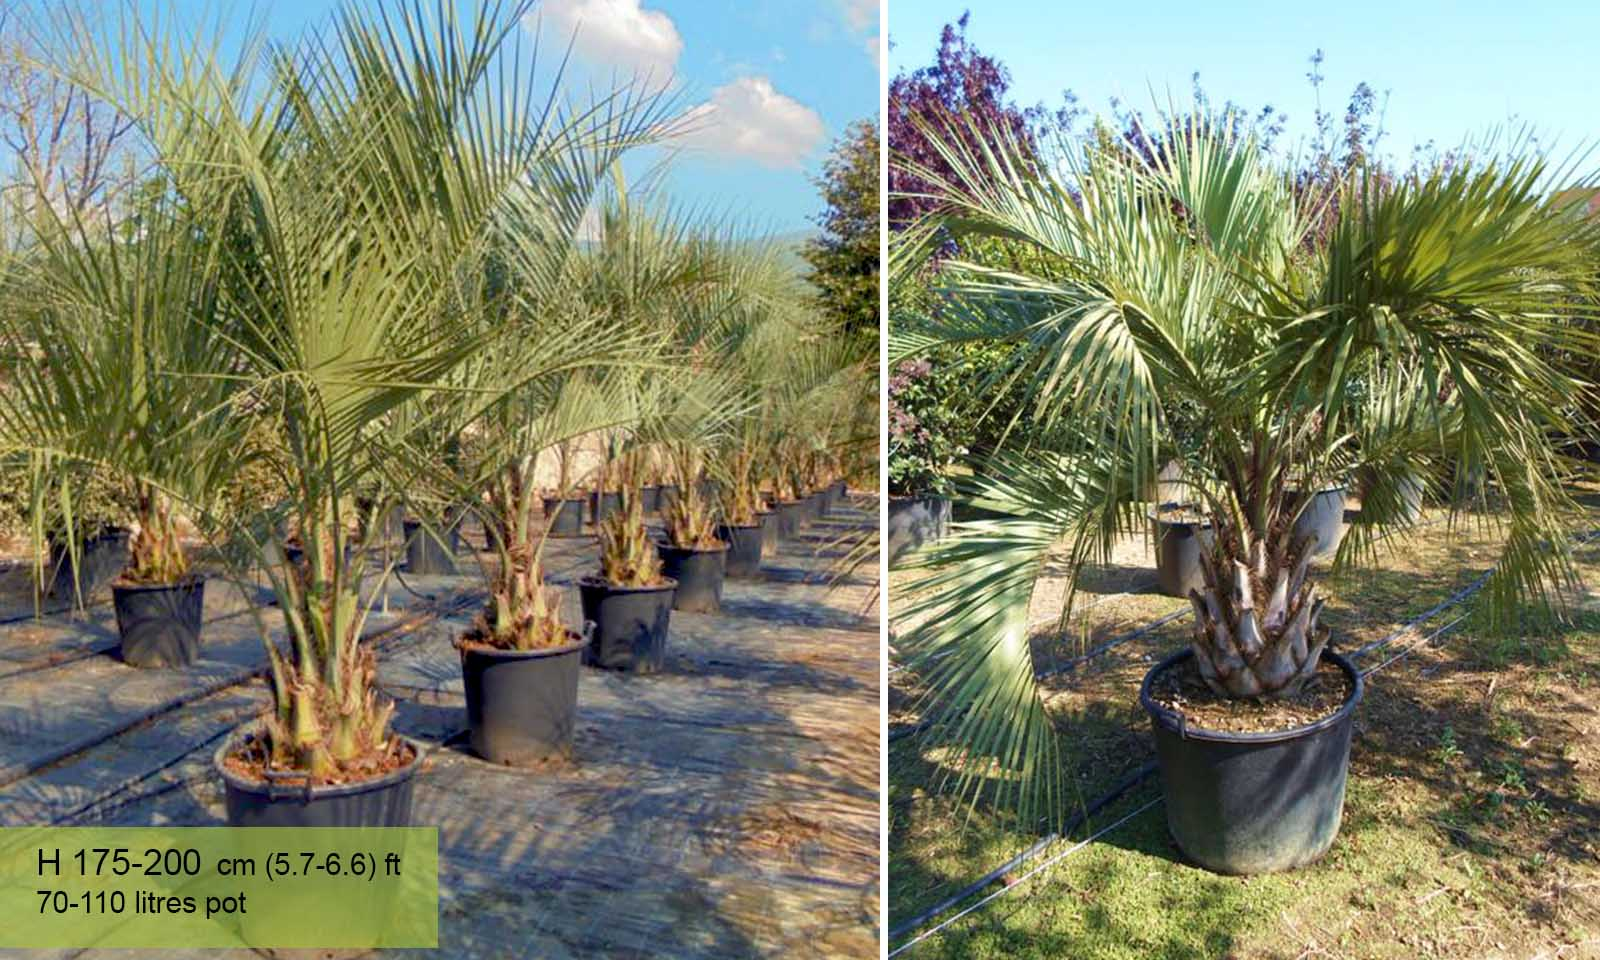 Butia Capitata (Jelly Palm)